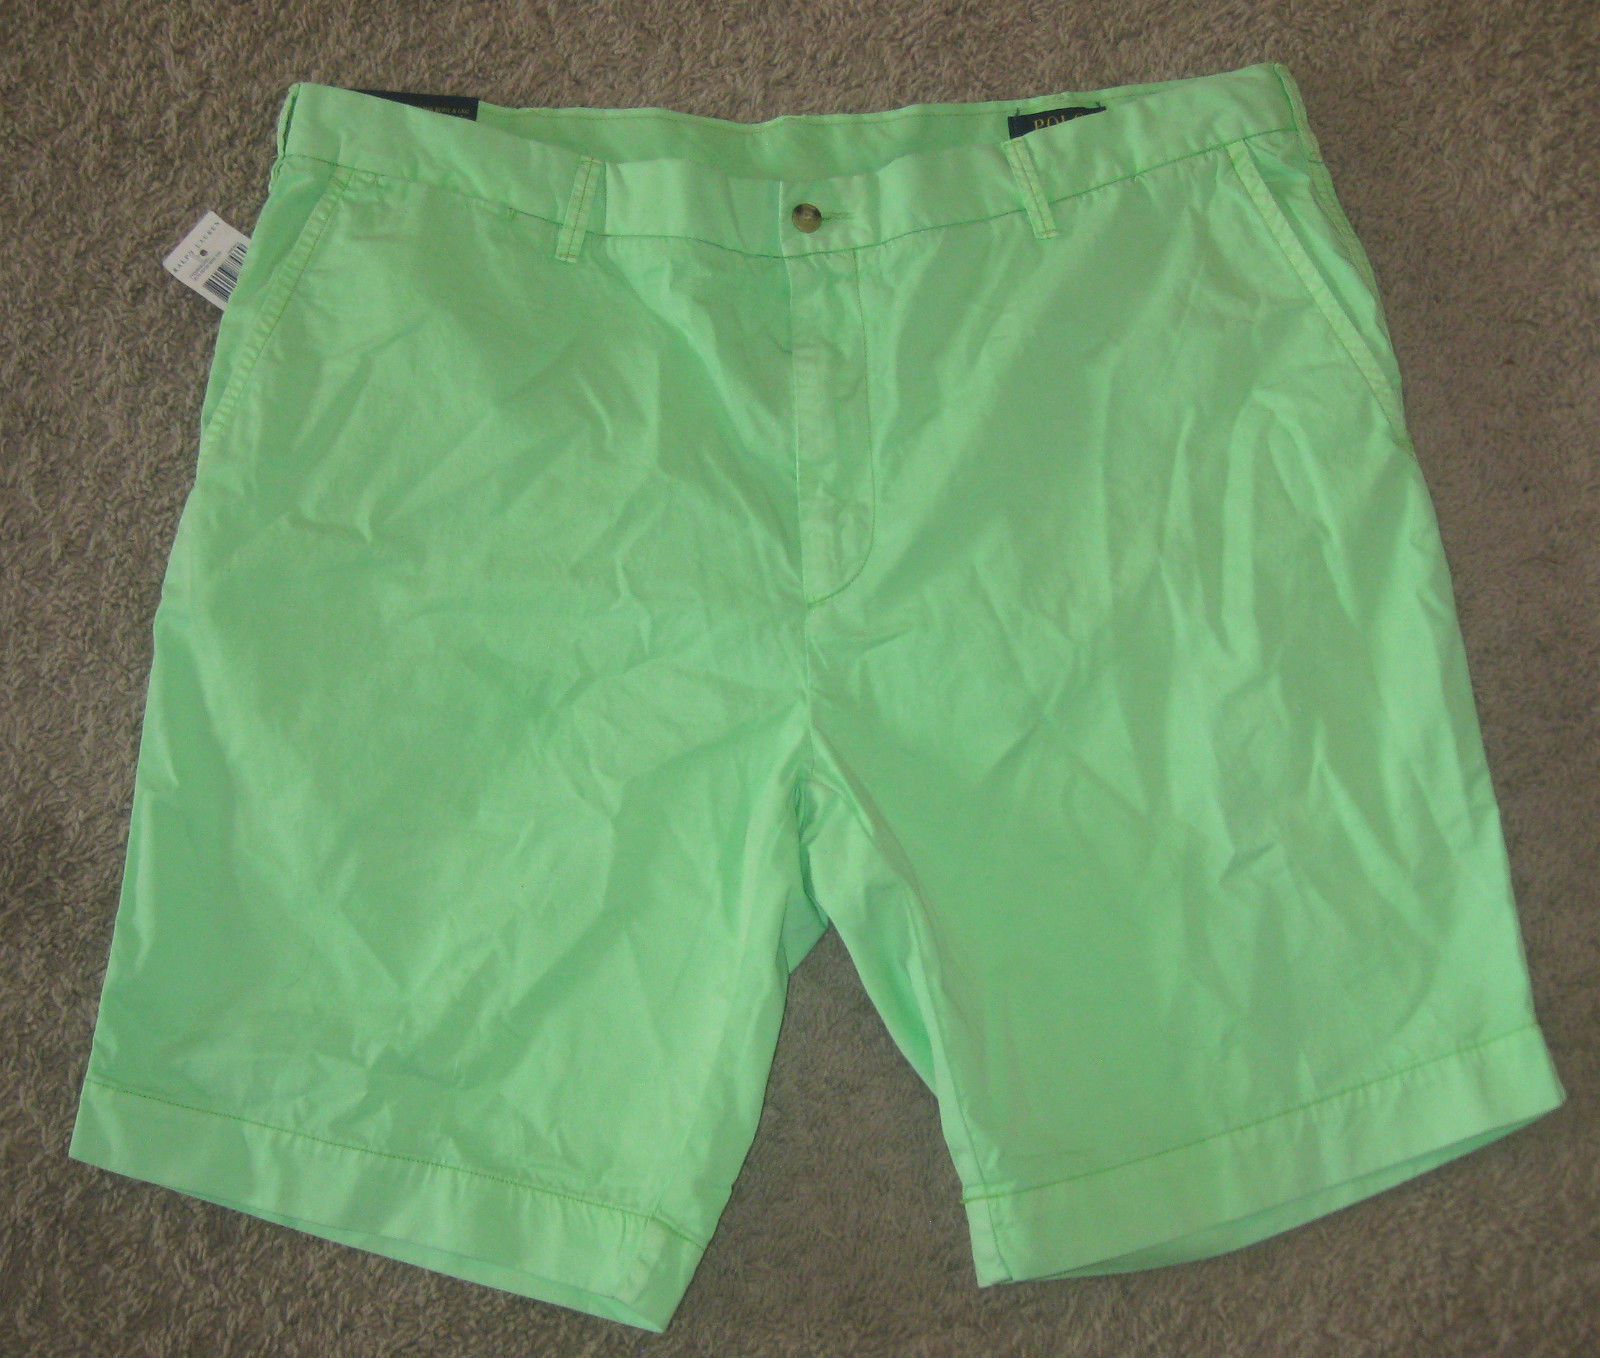 af6afd8c97 S l1600. S l1600. Previous. NEW POLO RALPH LAUREN MENS CLASSIC FIT WIND  GREEN SHORTS SIZE SZ 40 CHINO